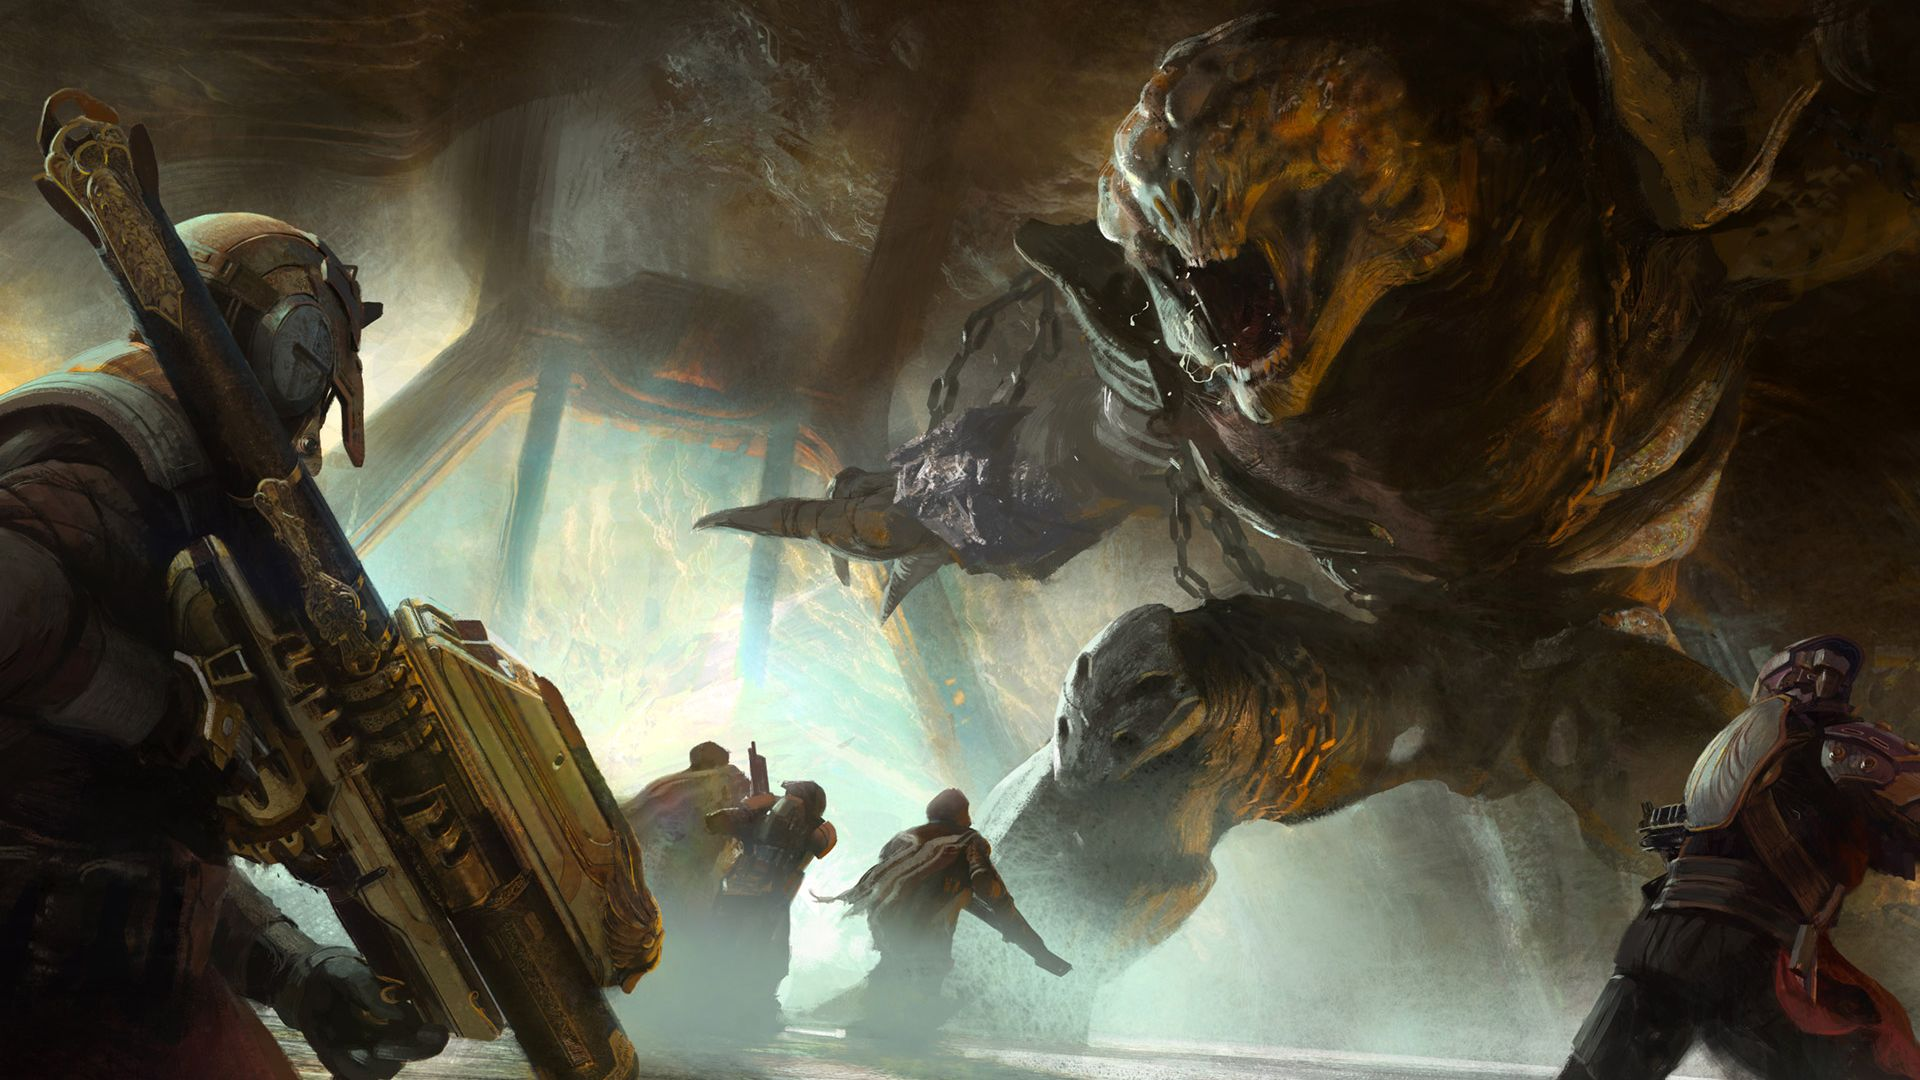 Destiny Hive Concept Art Game Art Video Game Art Game Concept Art